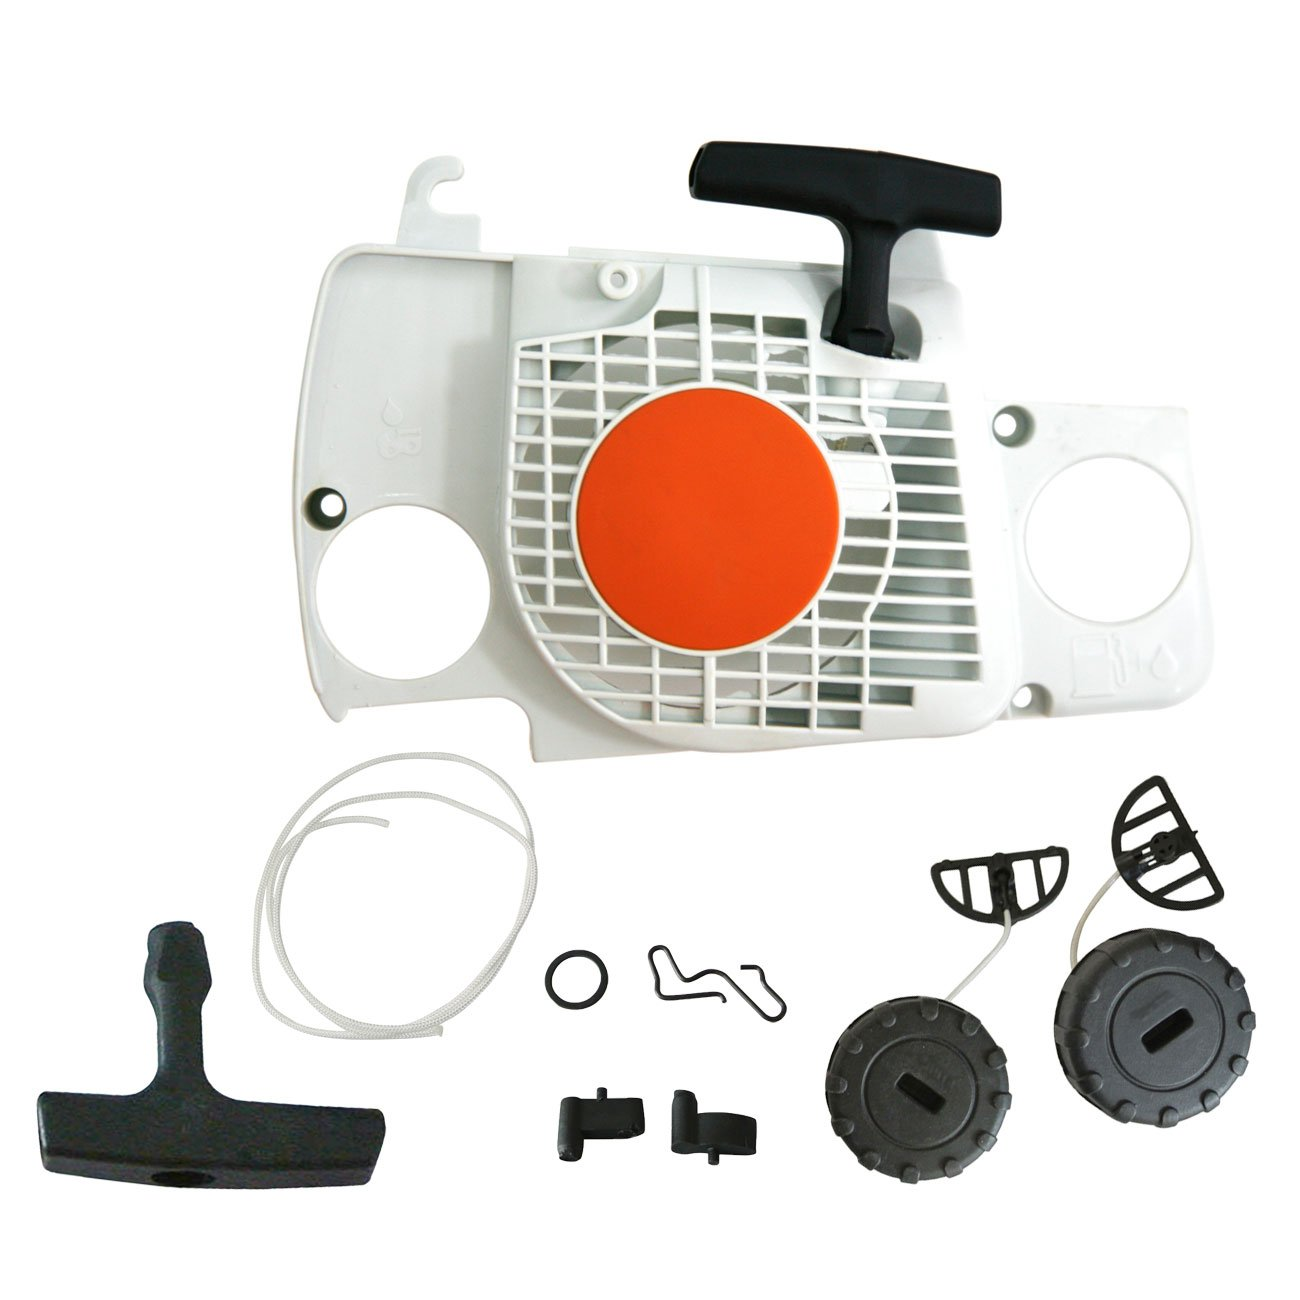 RECOIL STARTER ASSEMBLY FUEL OIL CAP for STIHL CHAINSAW MS210 MS230 MS250